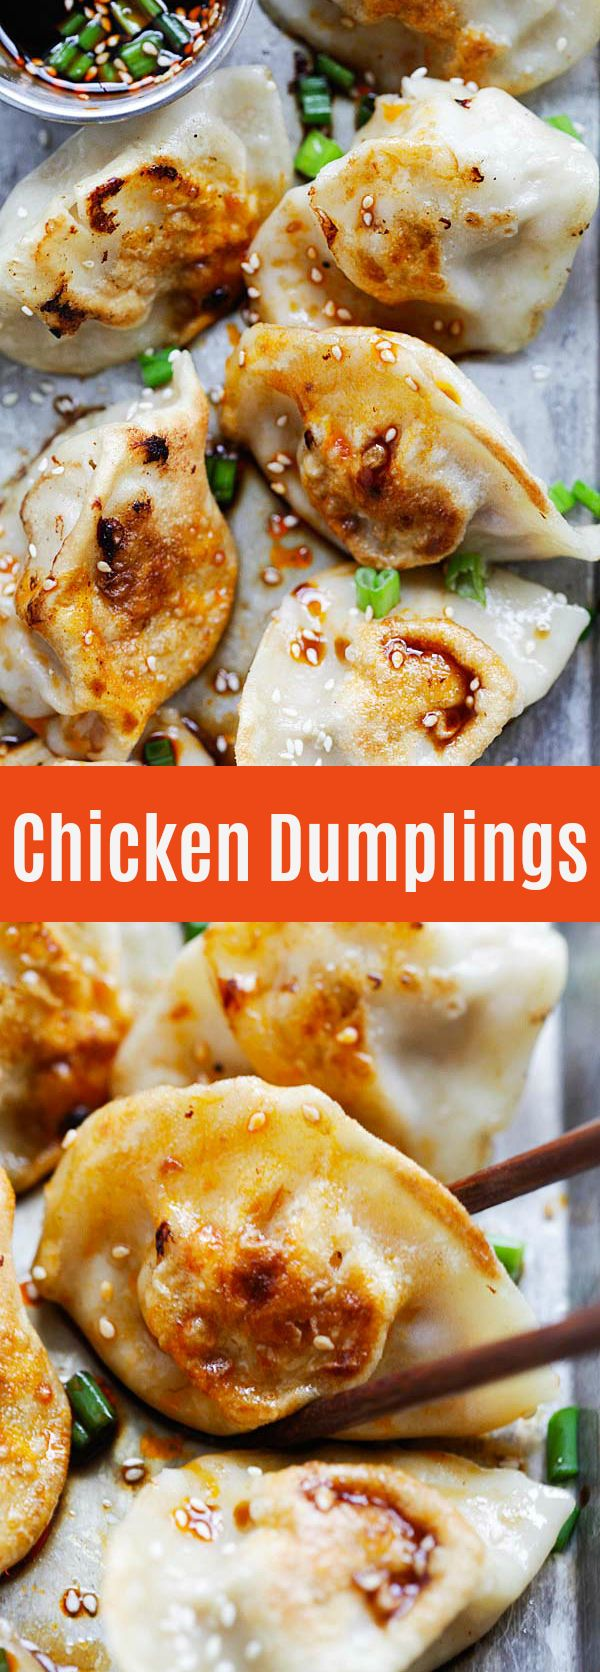 Chinese chicken dumplings with ground chicken and vegetables filling. Homemade dumplings are healthy and easy to make and perfect as a light meal or appetizer | rasamalaysia.com